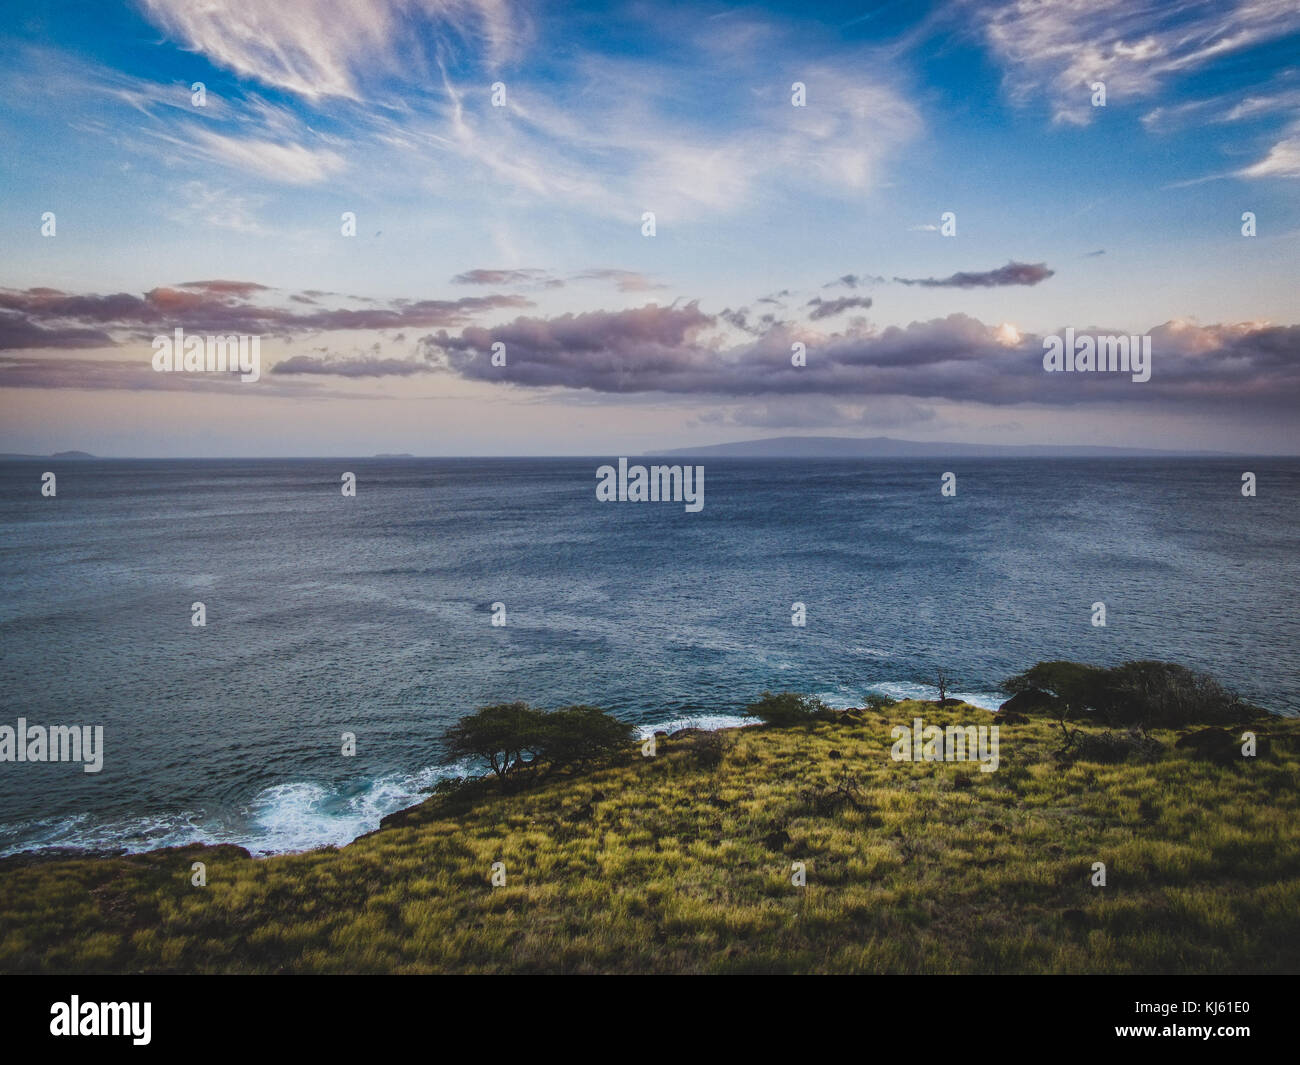 Colorful coastal sunset at Whale Lookout Point on the coast of Maui, Hawaii Stock Photo